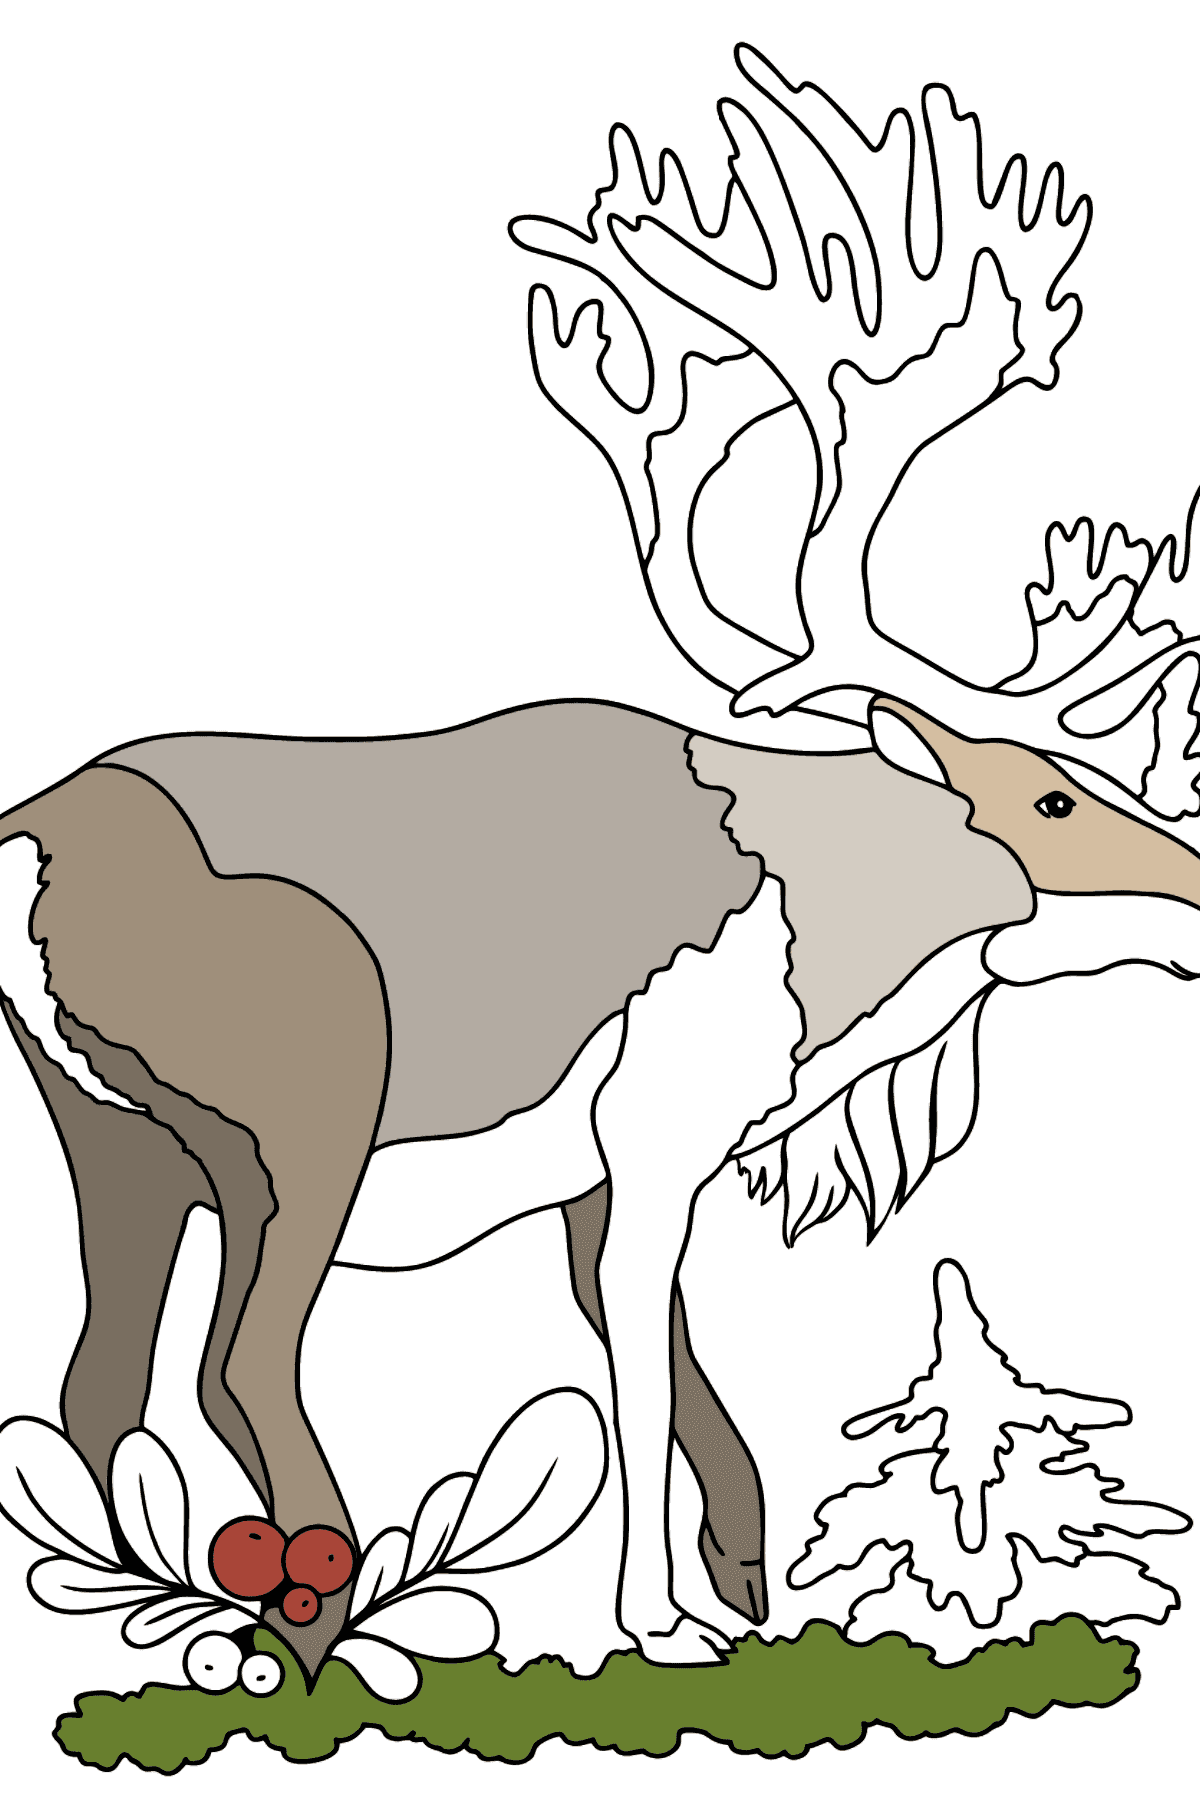 Coloring Page - A Noble Deer - Coloring Pages for Kids